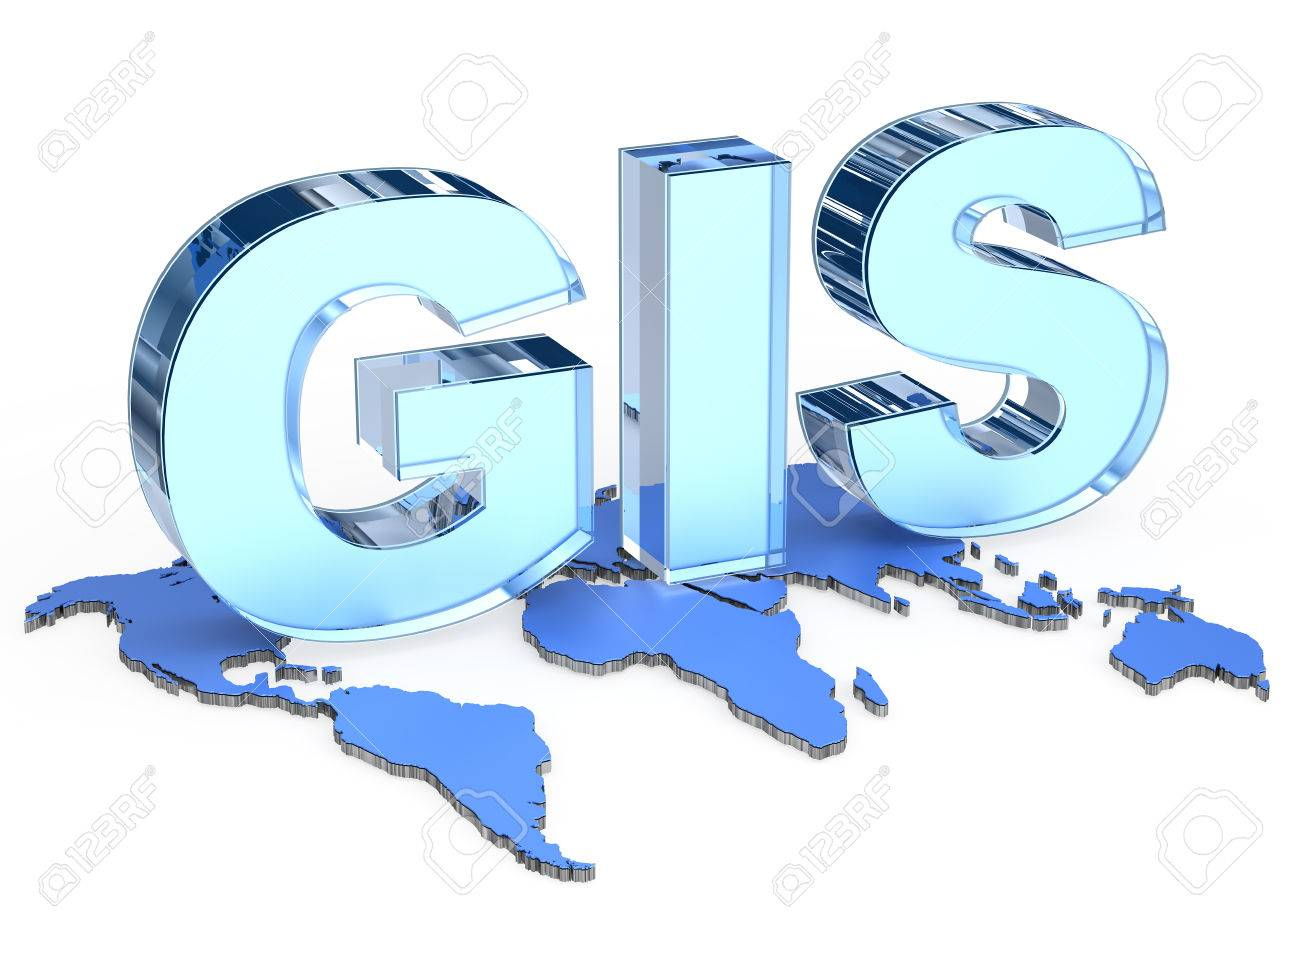 GIS for Society